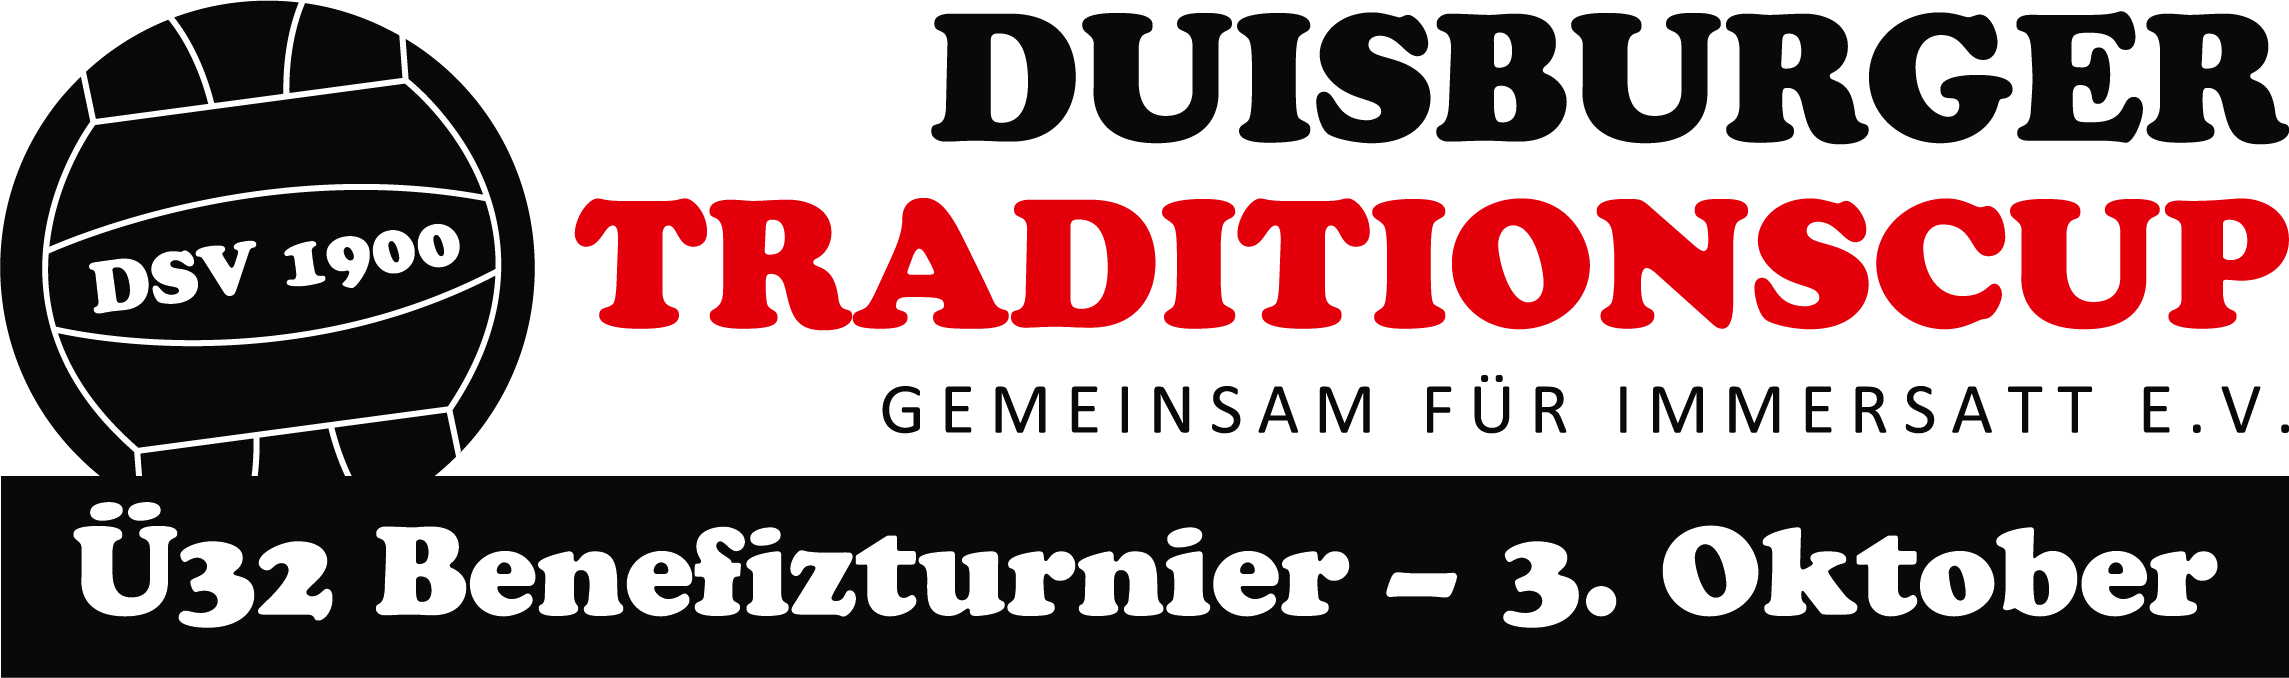 Duisburger Traditionscup